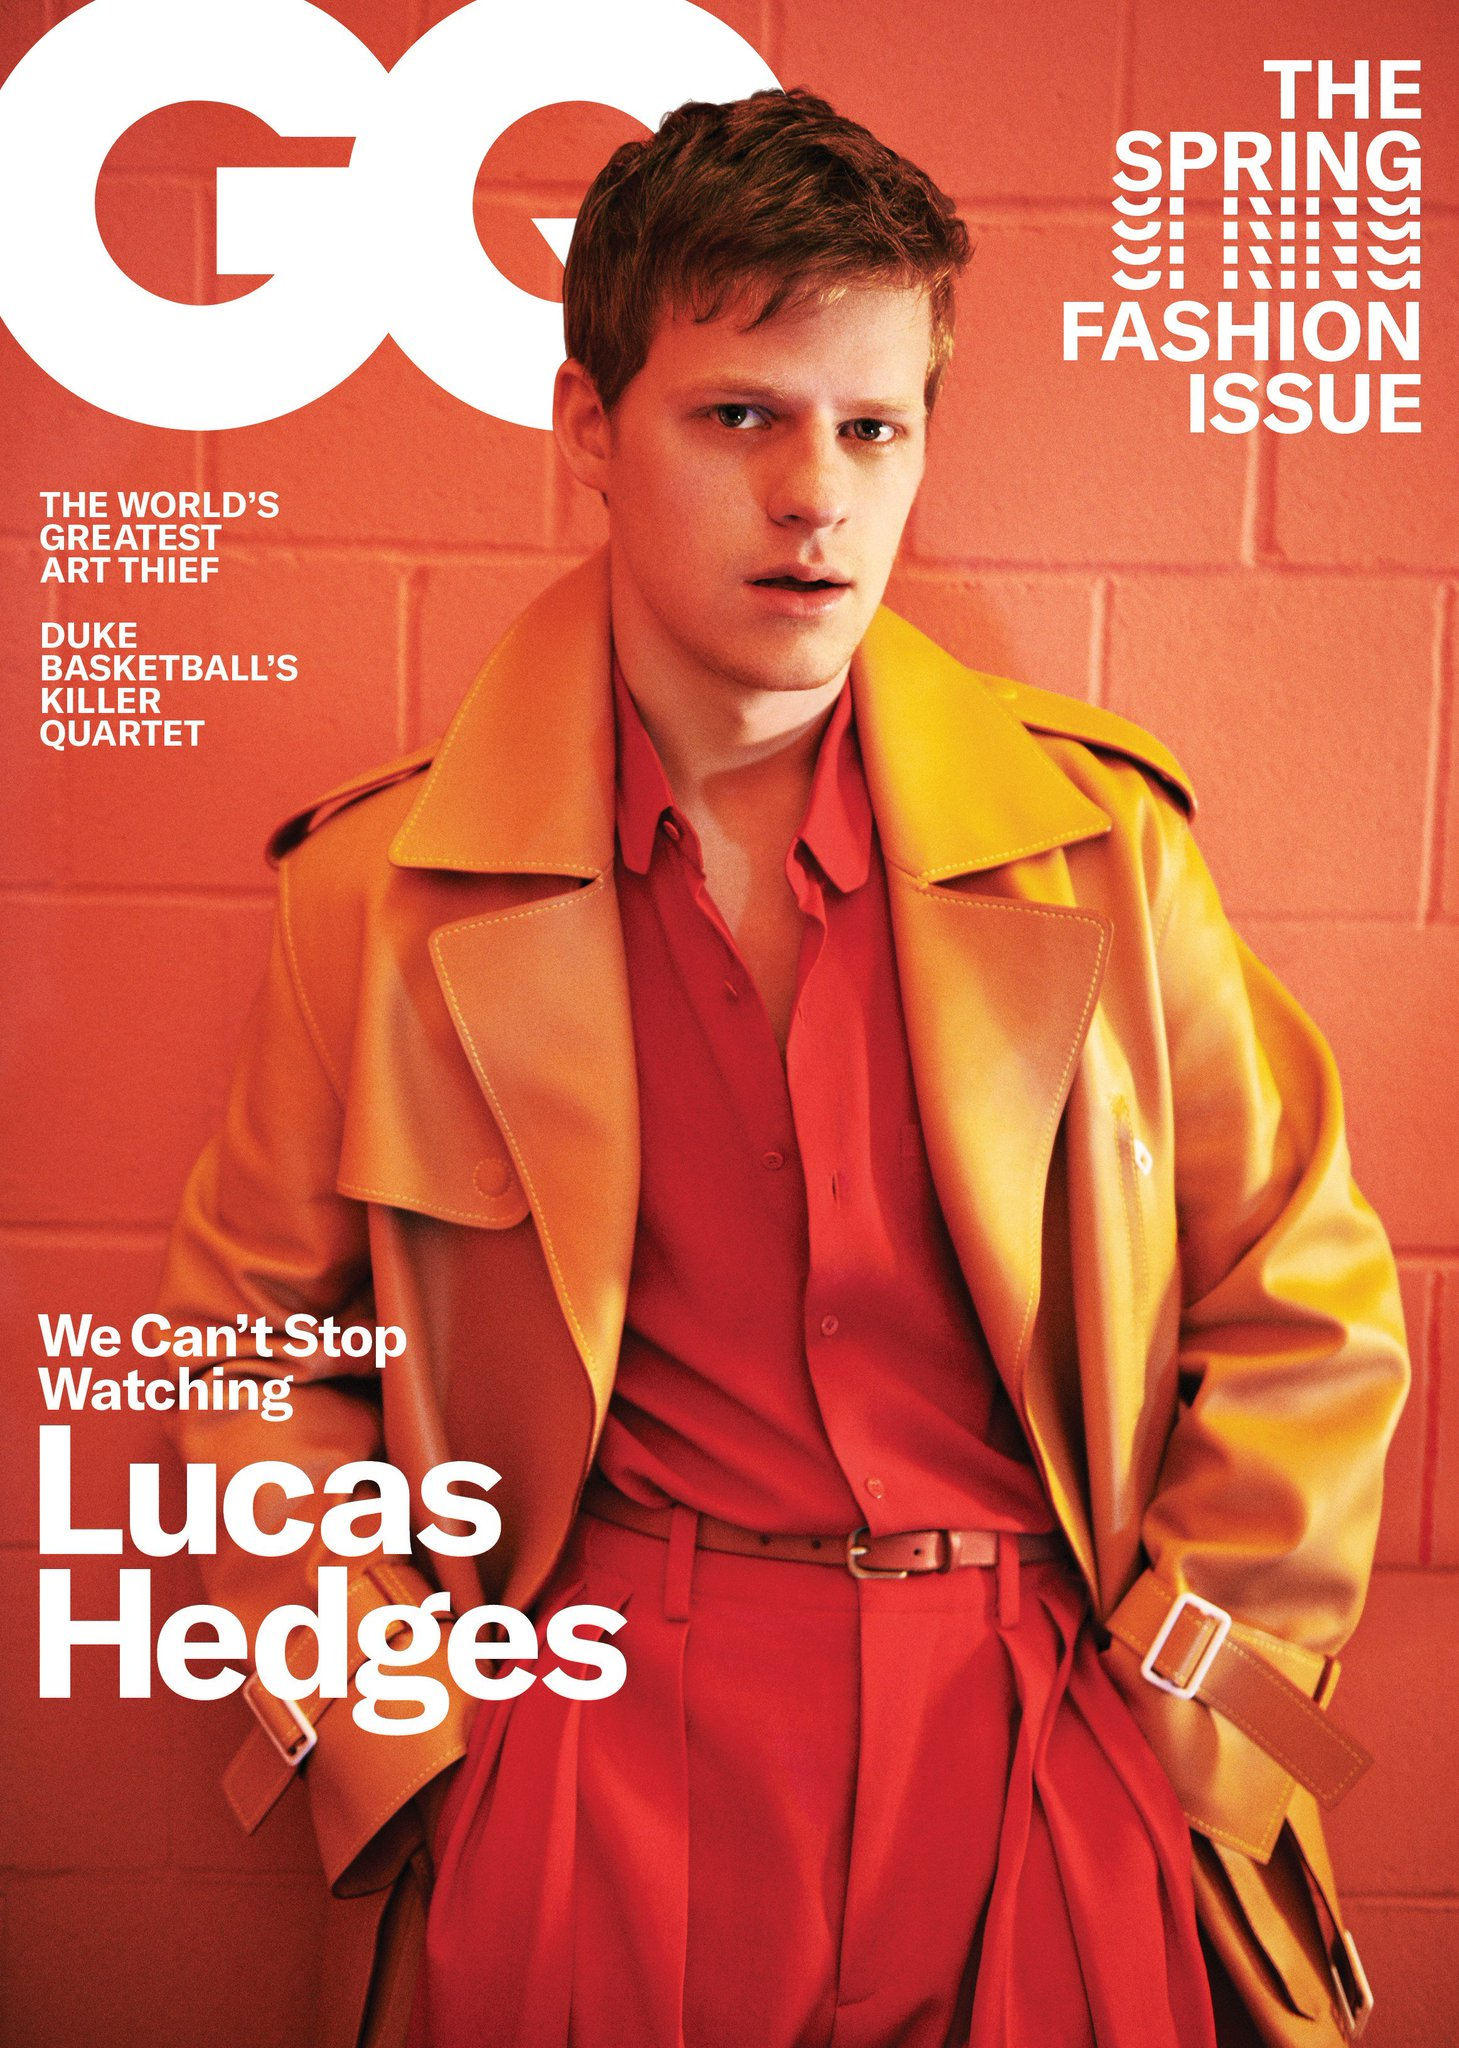 Presenting GQ's newest cover star: Lucas Hedges, photographed by Ryan McGinley https://t.co/Fsje0Qkrq6 https://t.co/DEnyXi9fg5